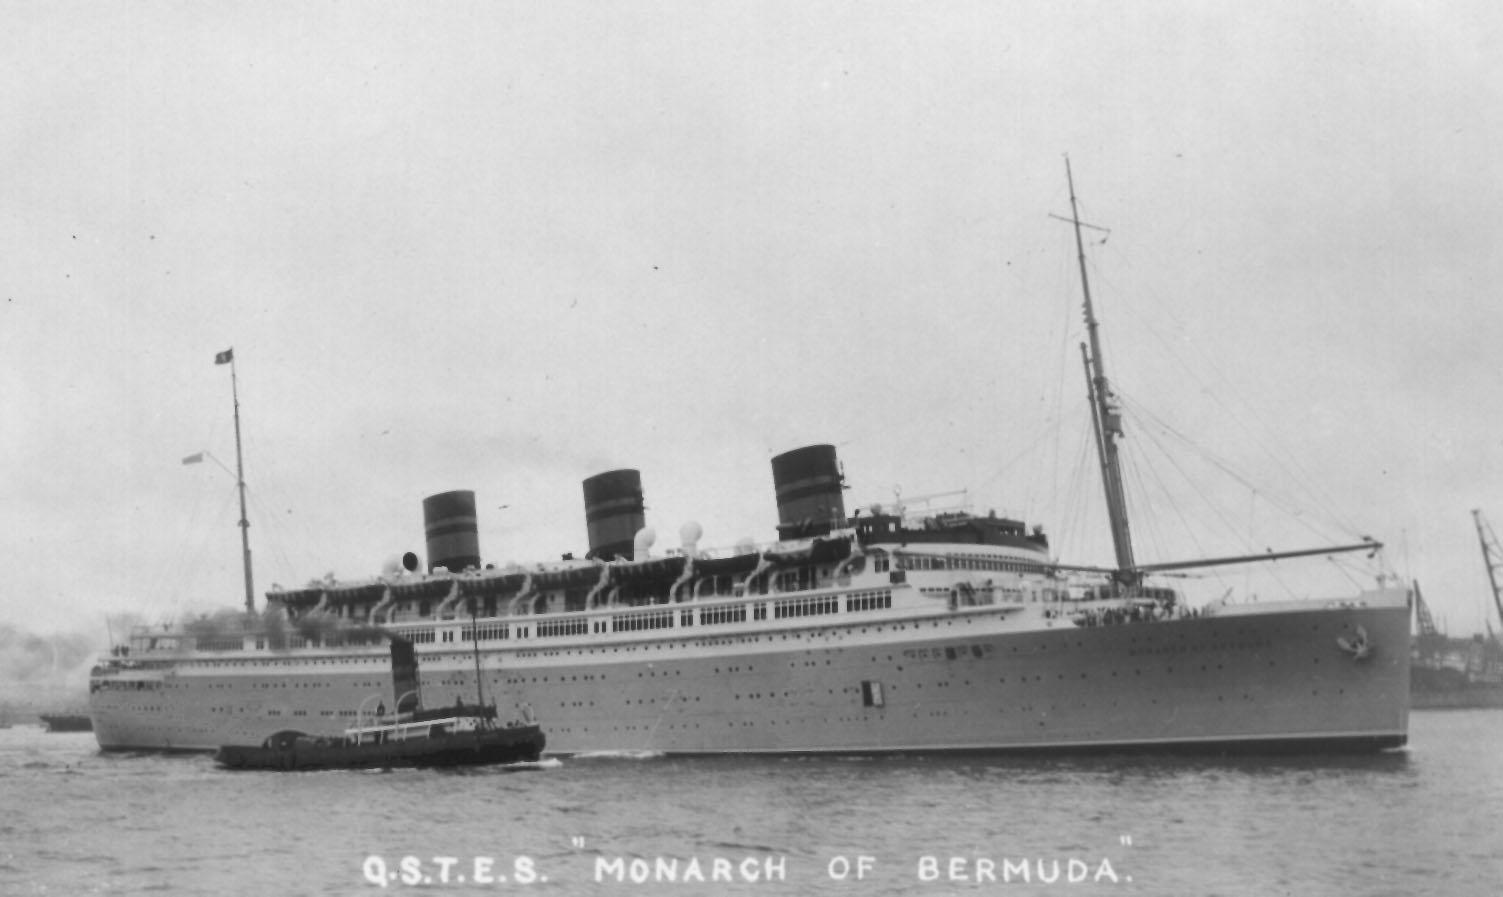 """Passenger Vessel """"Monarch Of Bermuda"""", built in 1931 by Vickers-Armstong Ltd - Newcastle.  Owned by Furness, Withy & Co. Ltd. Tonnage:  22424 gross, 12876 net Dimensions:  length 553'2"""", breadth 76'7"""", draught 39'0"""" Official Number:  29748 Port Of Reg"""